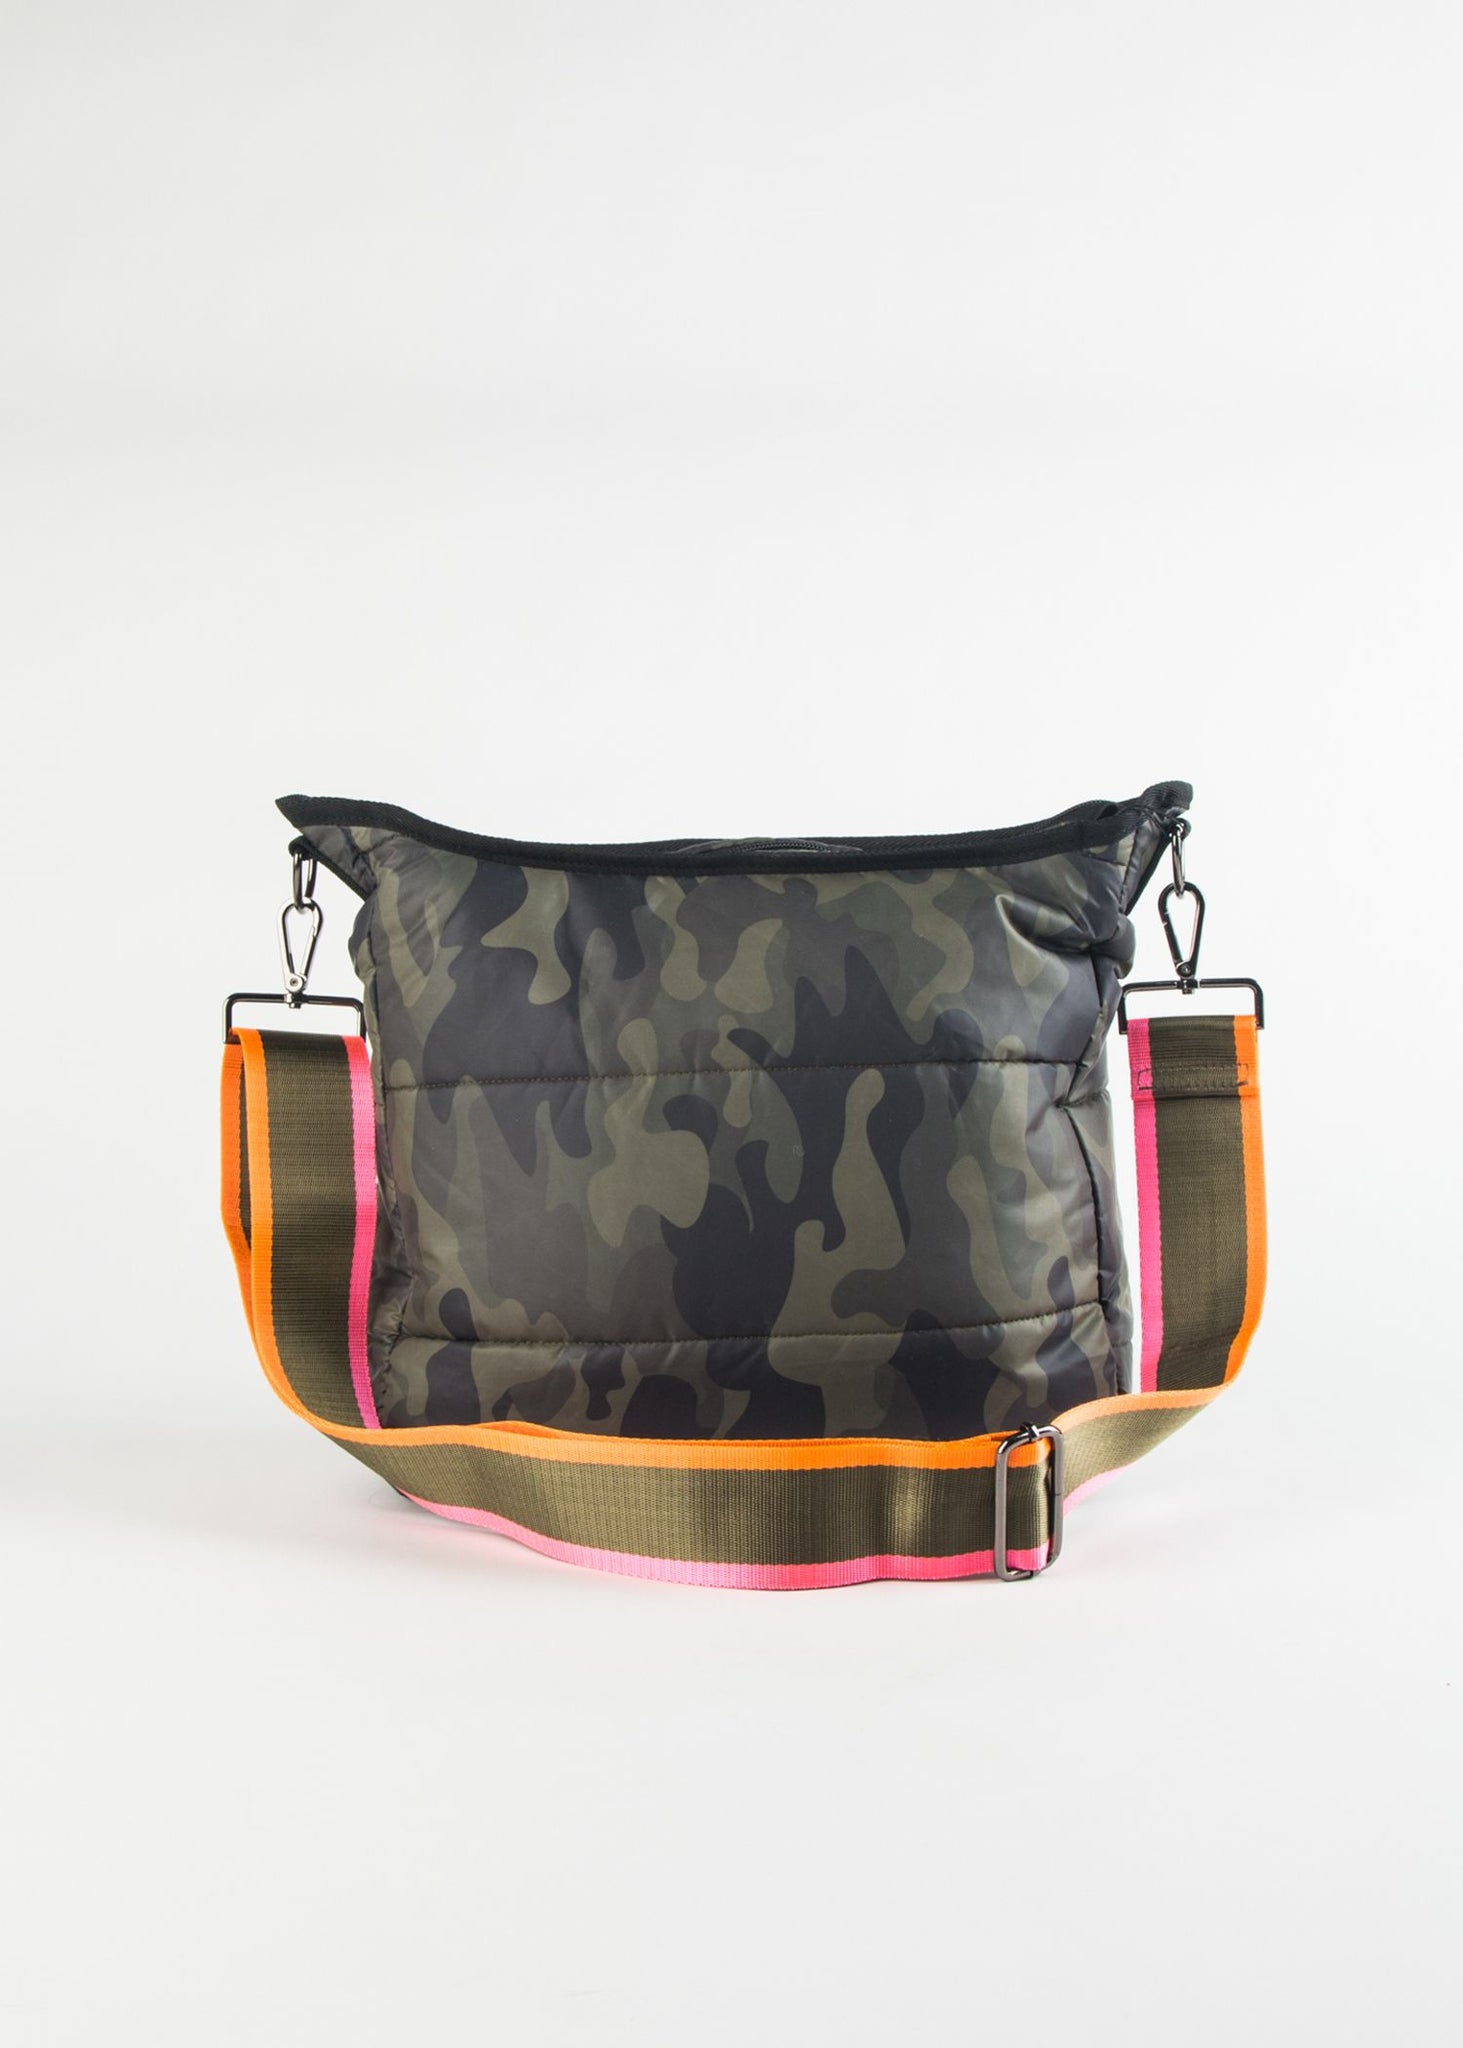 PERRI-SARG NYLON CROSSBODY